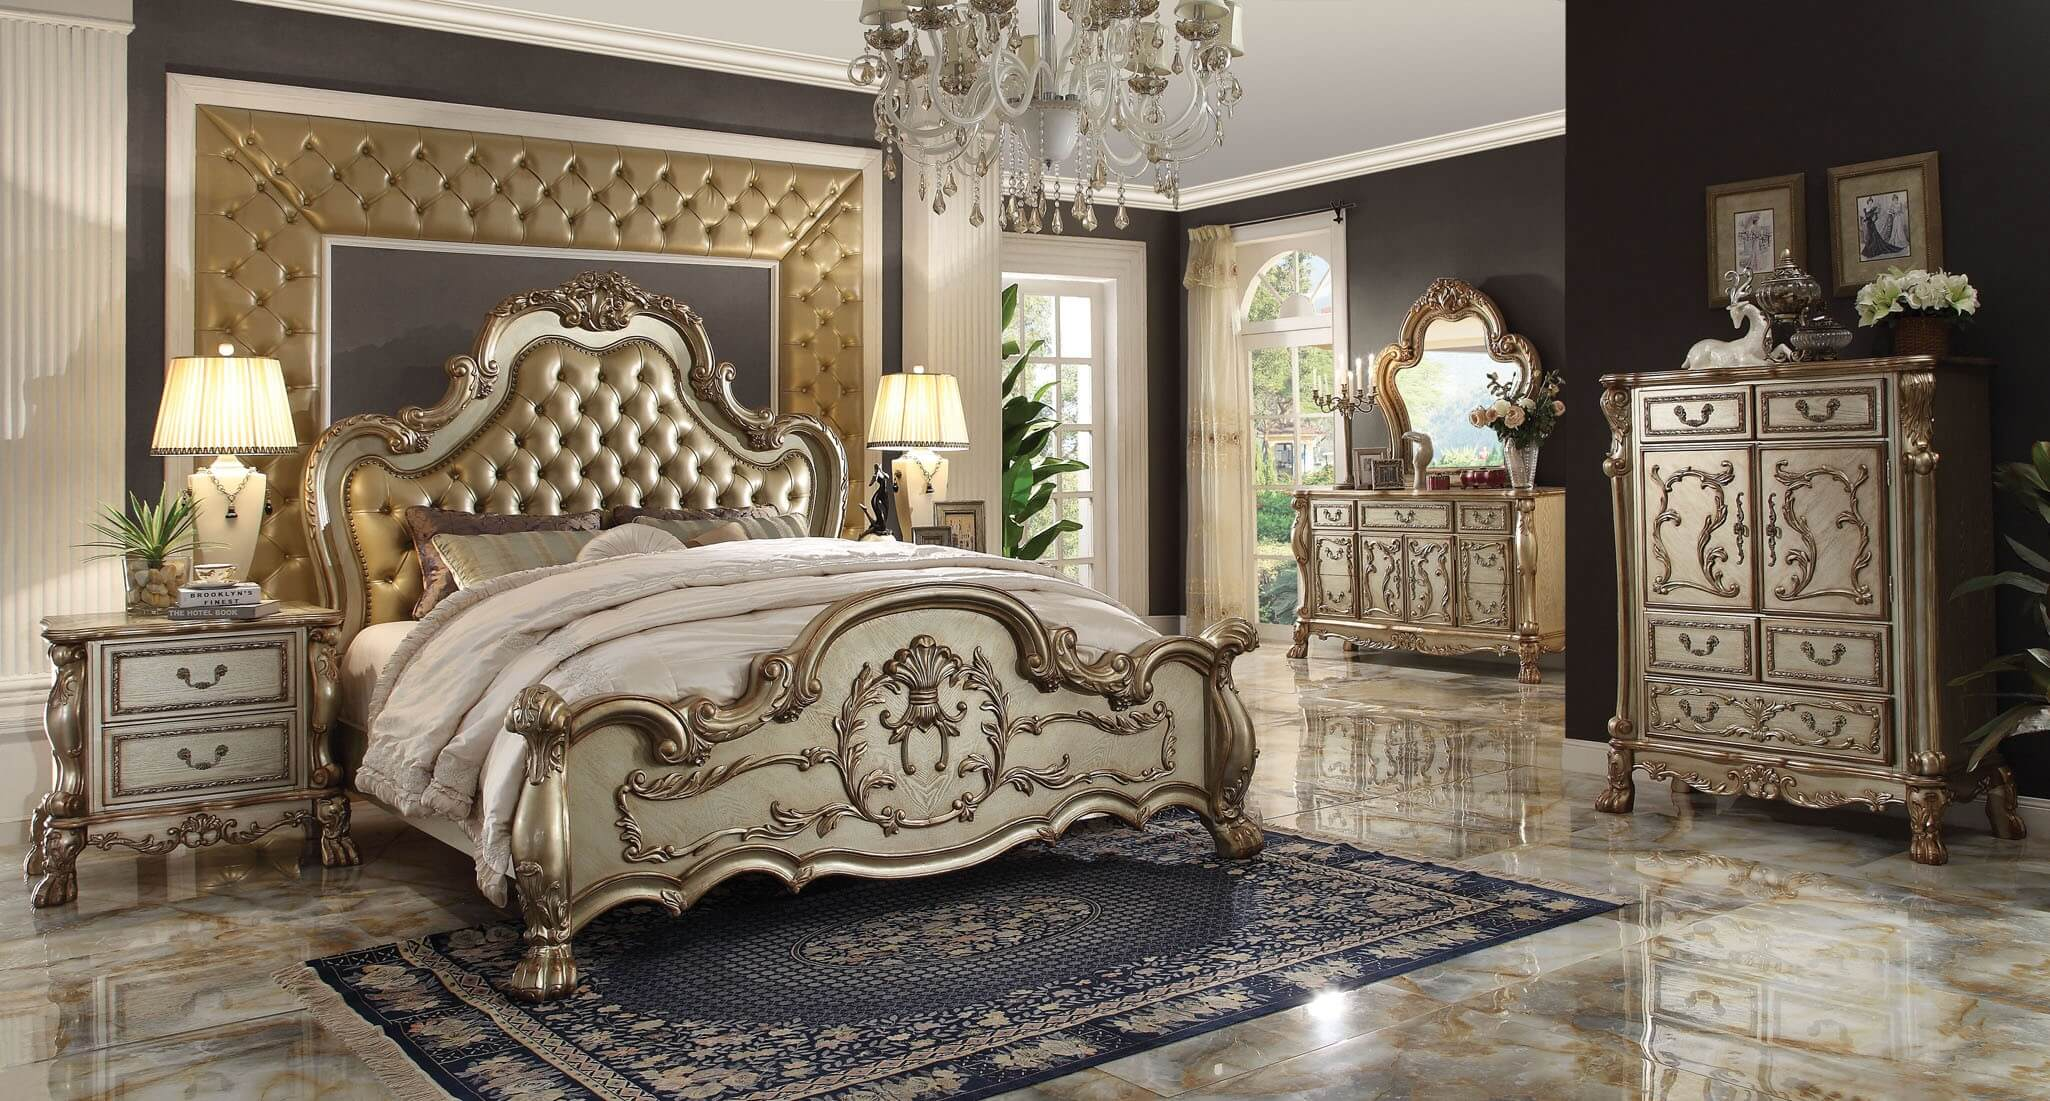 Enjoy this comfortable, elegant bed from F7 today. Or for Mother's Day!